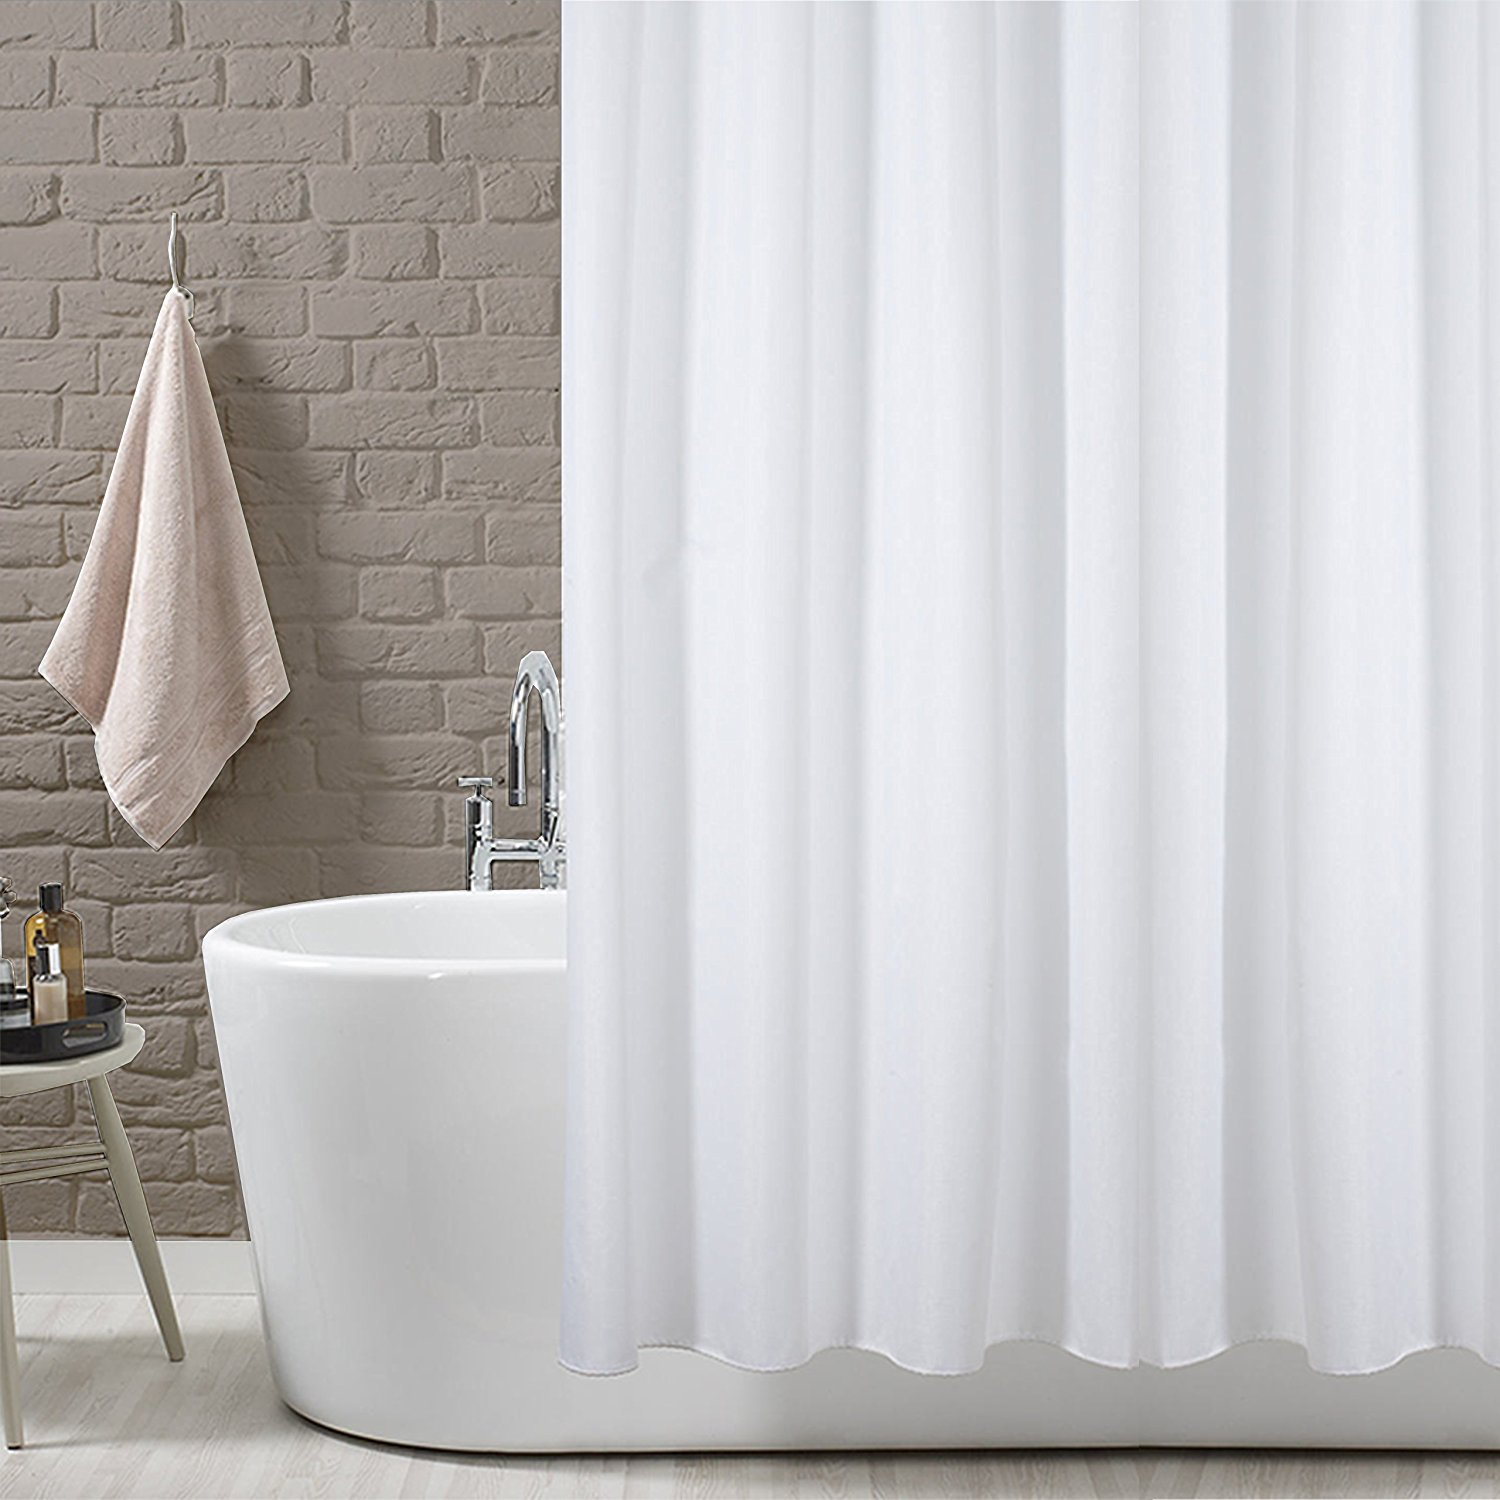 resistant bath over overstock on free water home curtains product fashions carnation shipping orders cityscape fabric curtain shower bedding